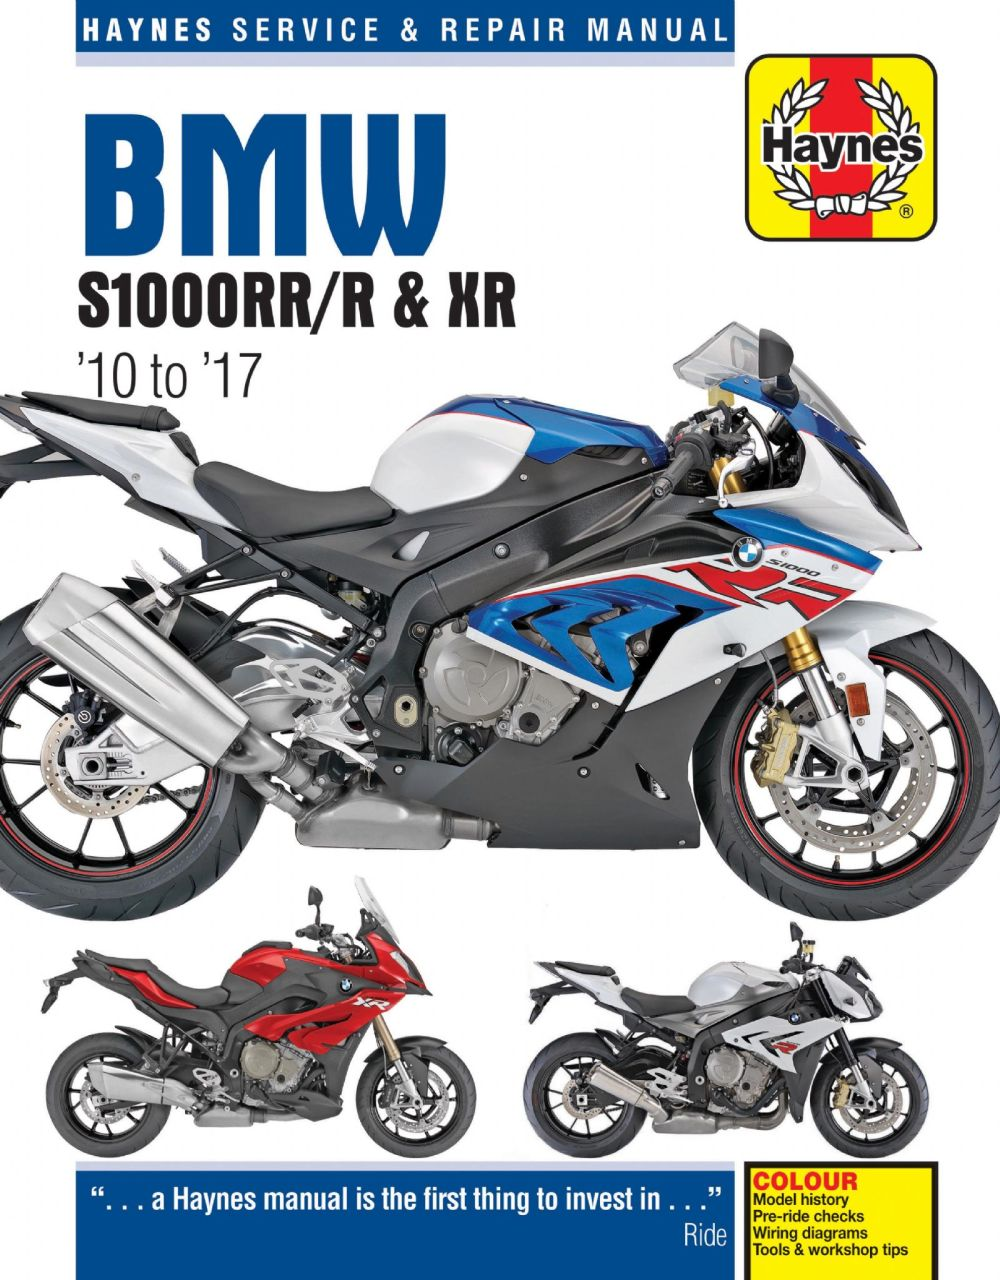 medium resolution of bmw s1000rr r xr 10 to 17 haynes repair manual 2012 bmw s1000rr wiring diagram s1000rr wiring diagram